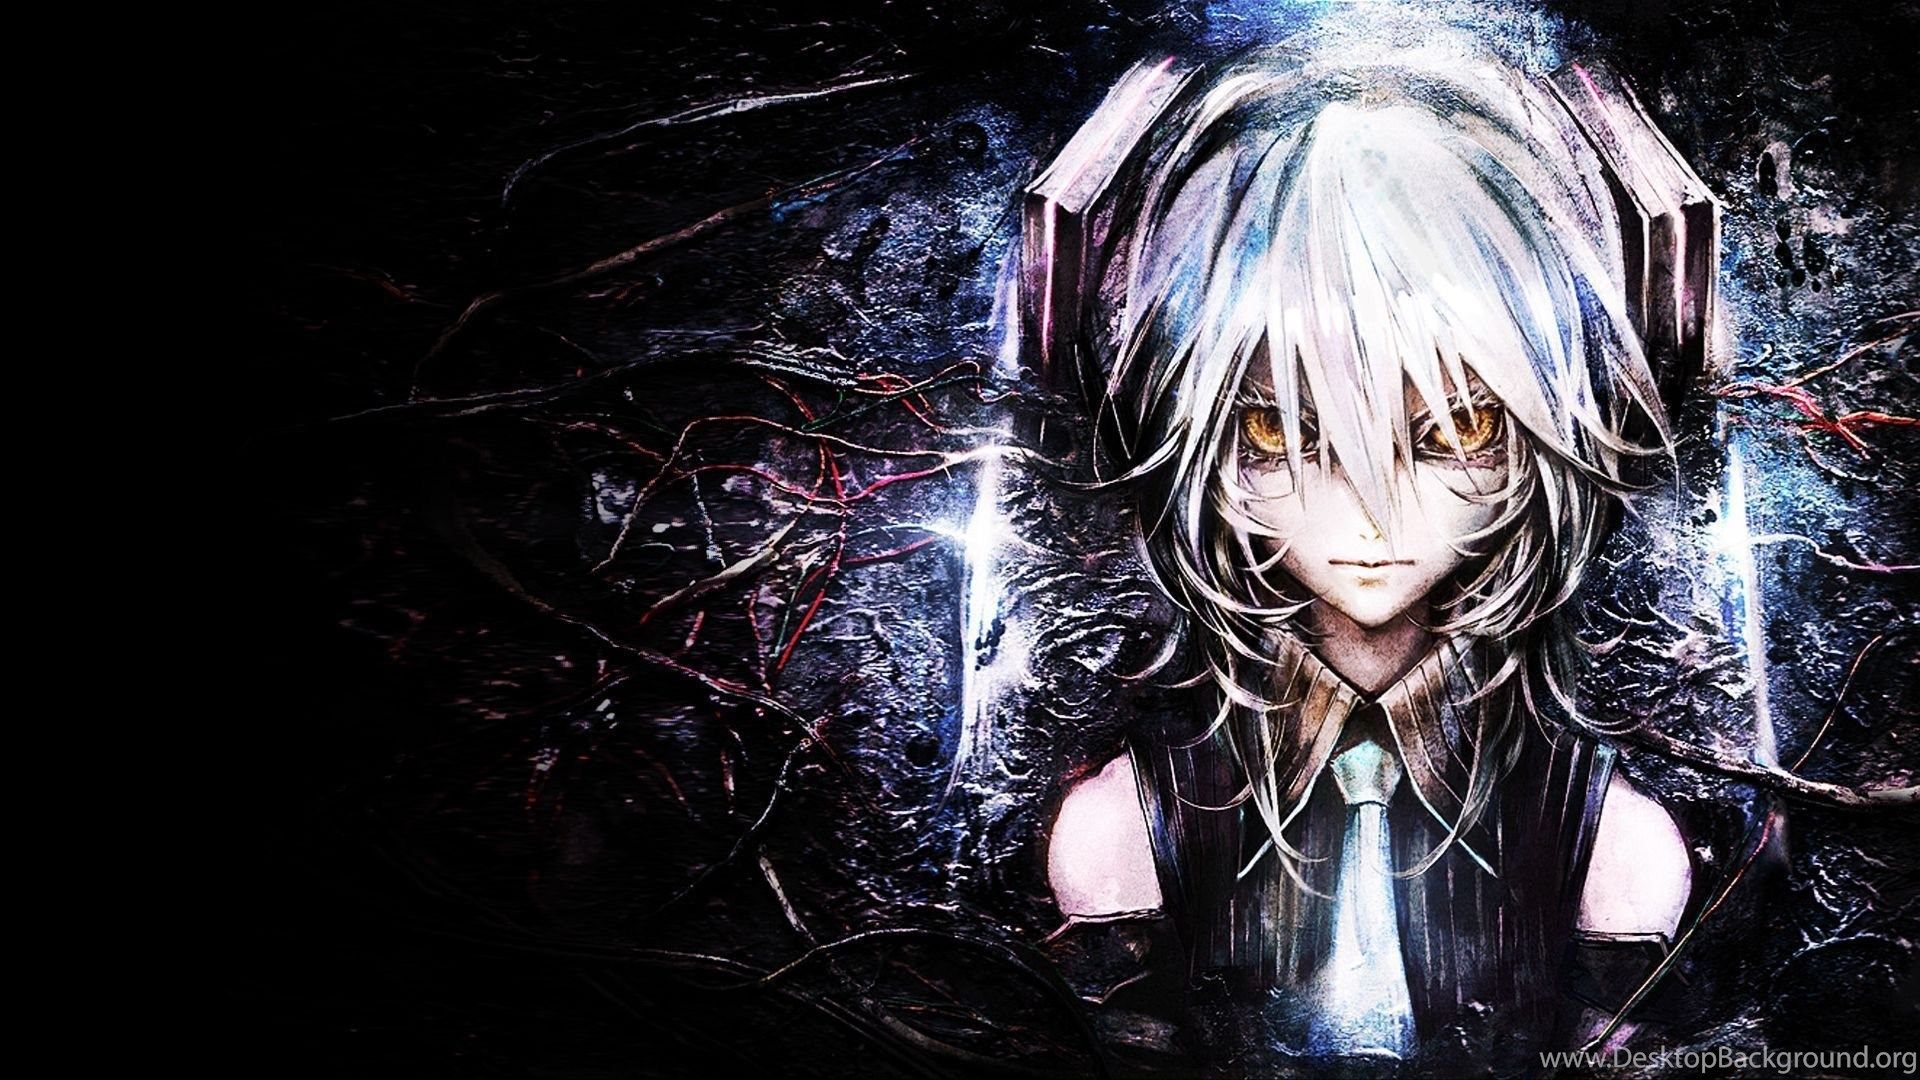 Anime hd 2k 4k 8k wallpapers your desktop - Anime hd wallpapers for pc ...